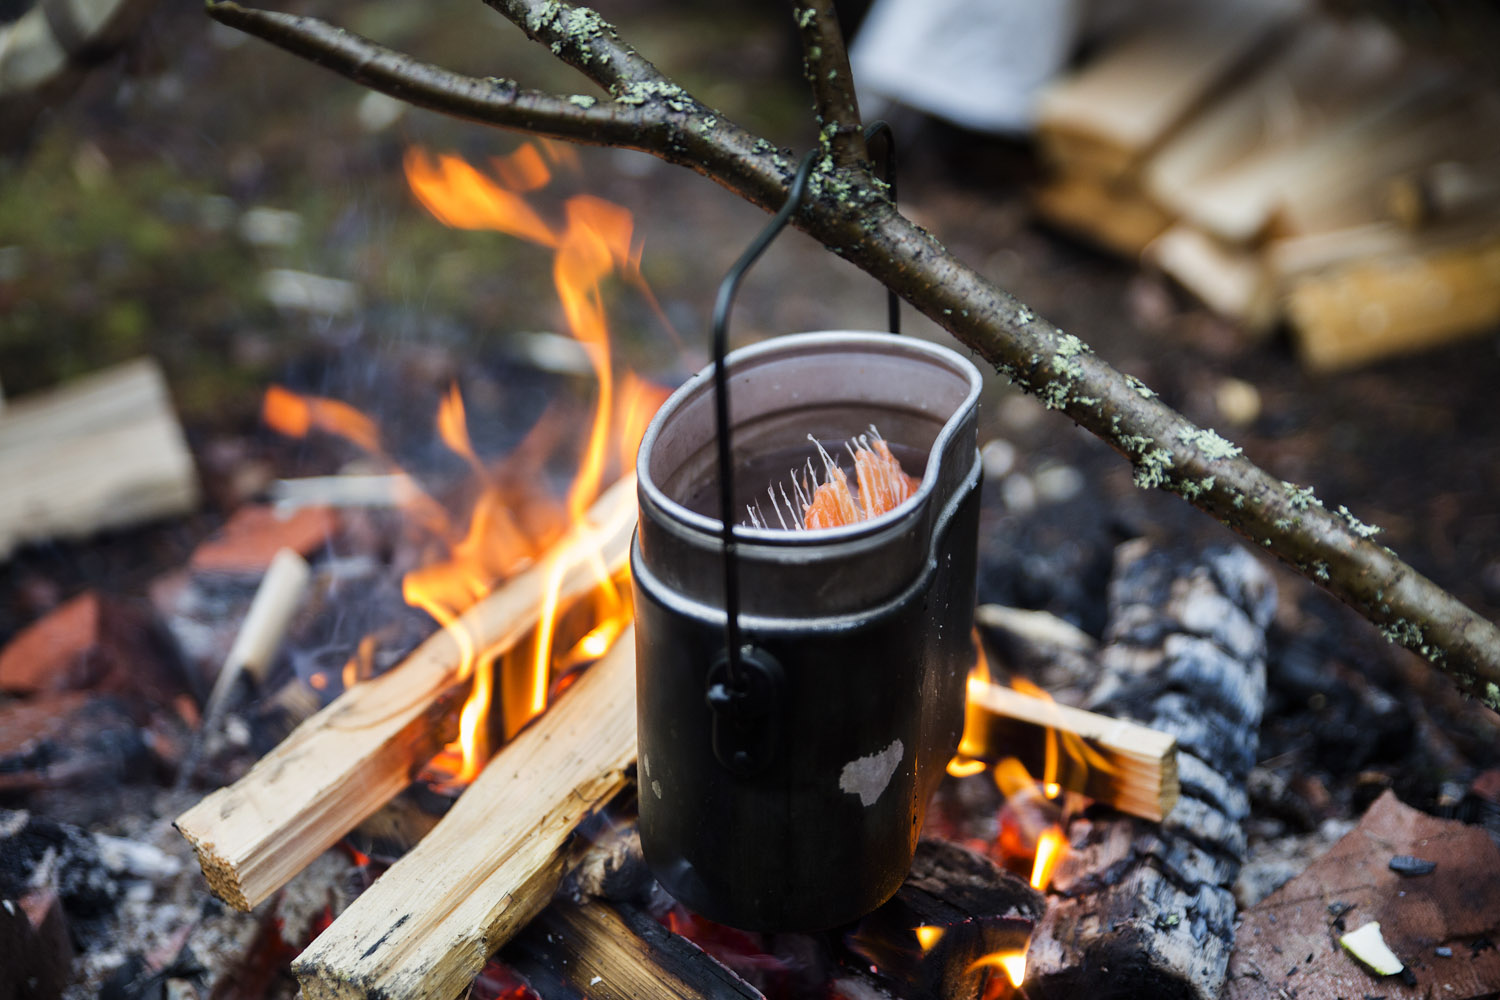 fish soup over an open fire